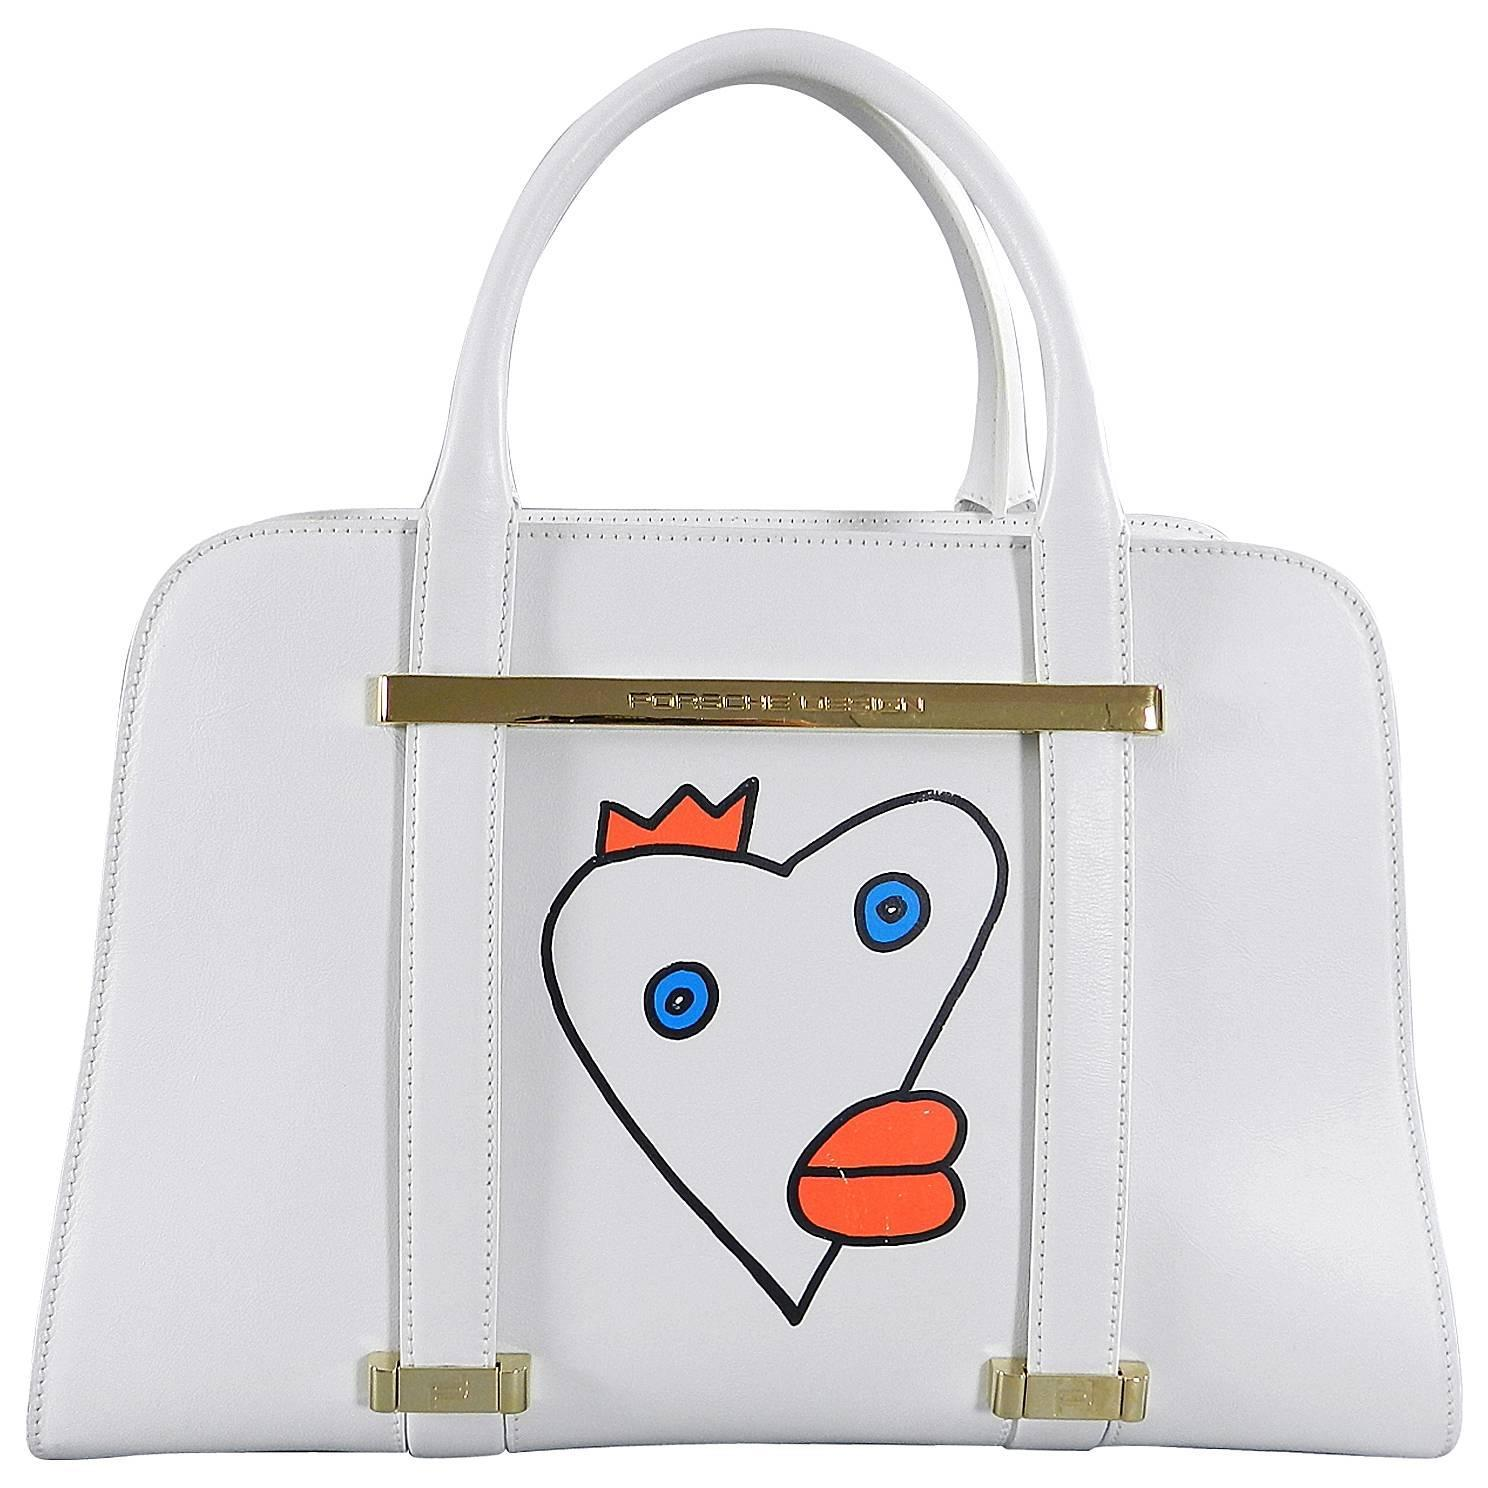 Porsche Design Twin Bag By Thierry Noir Limited Edition